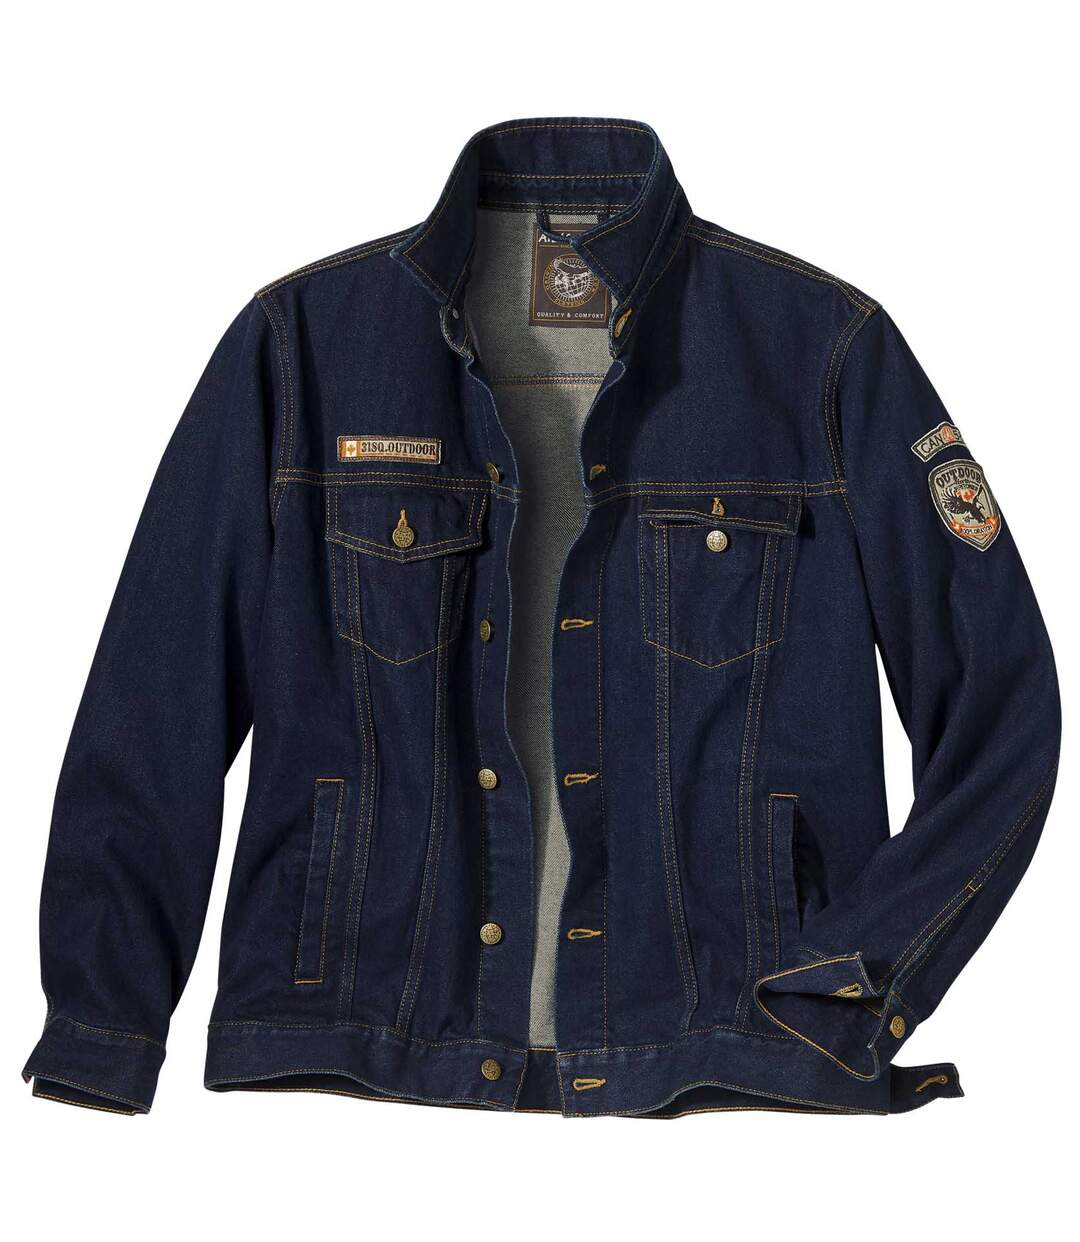 Men's Dark Blue Denim Jacket